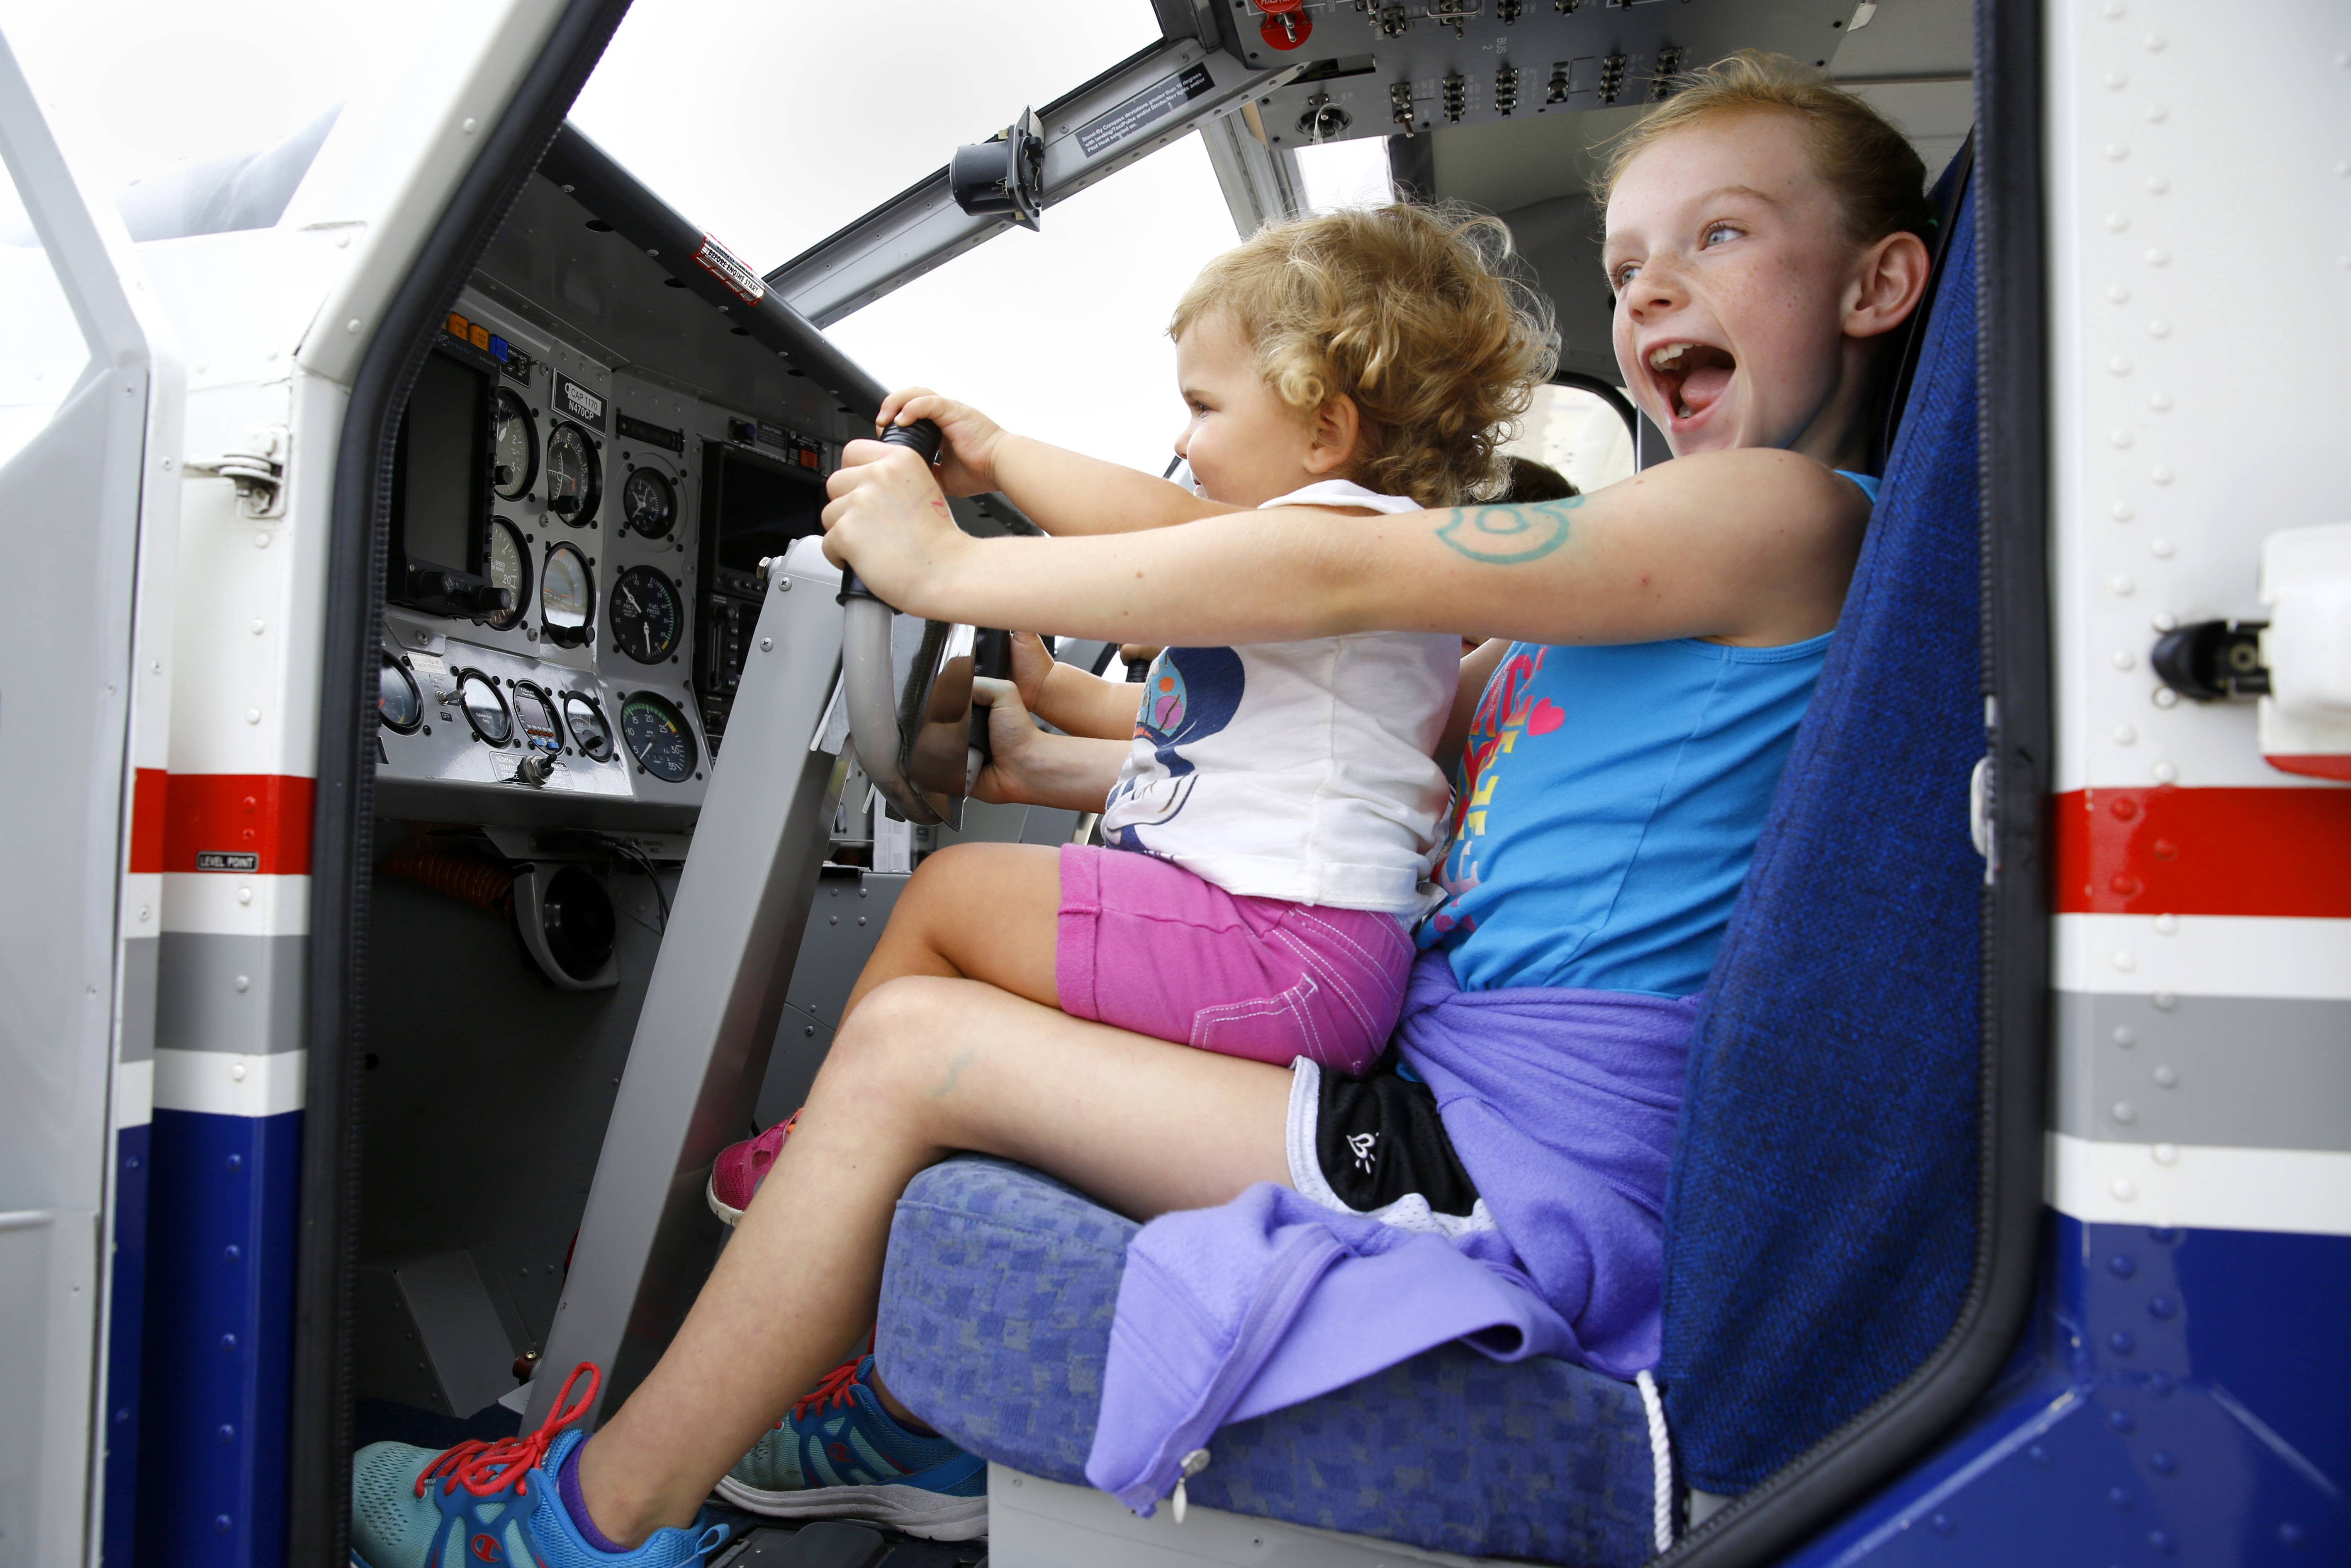 Gracie Perry, 9, of West Chicago, holds 1-year-old Jordyn Pater of St. Charles, as they enjoy their time behind the stick of an airplane during Tuesday's Back to School Celebration sponsored by the DuPage Airport Authority and the city of West Chicago.